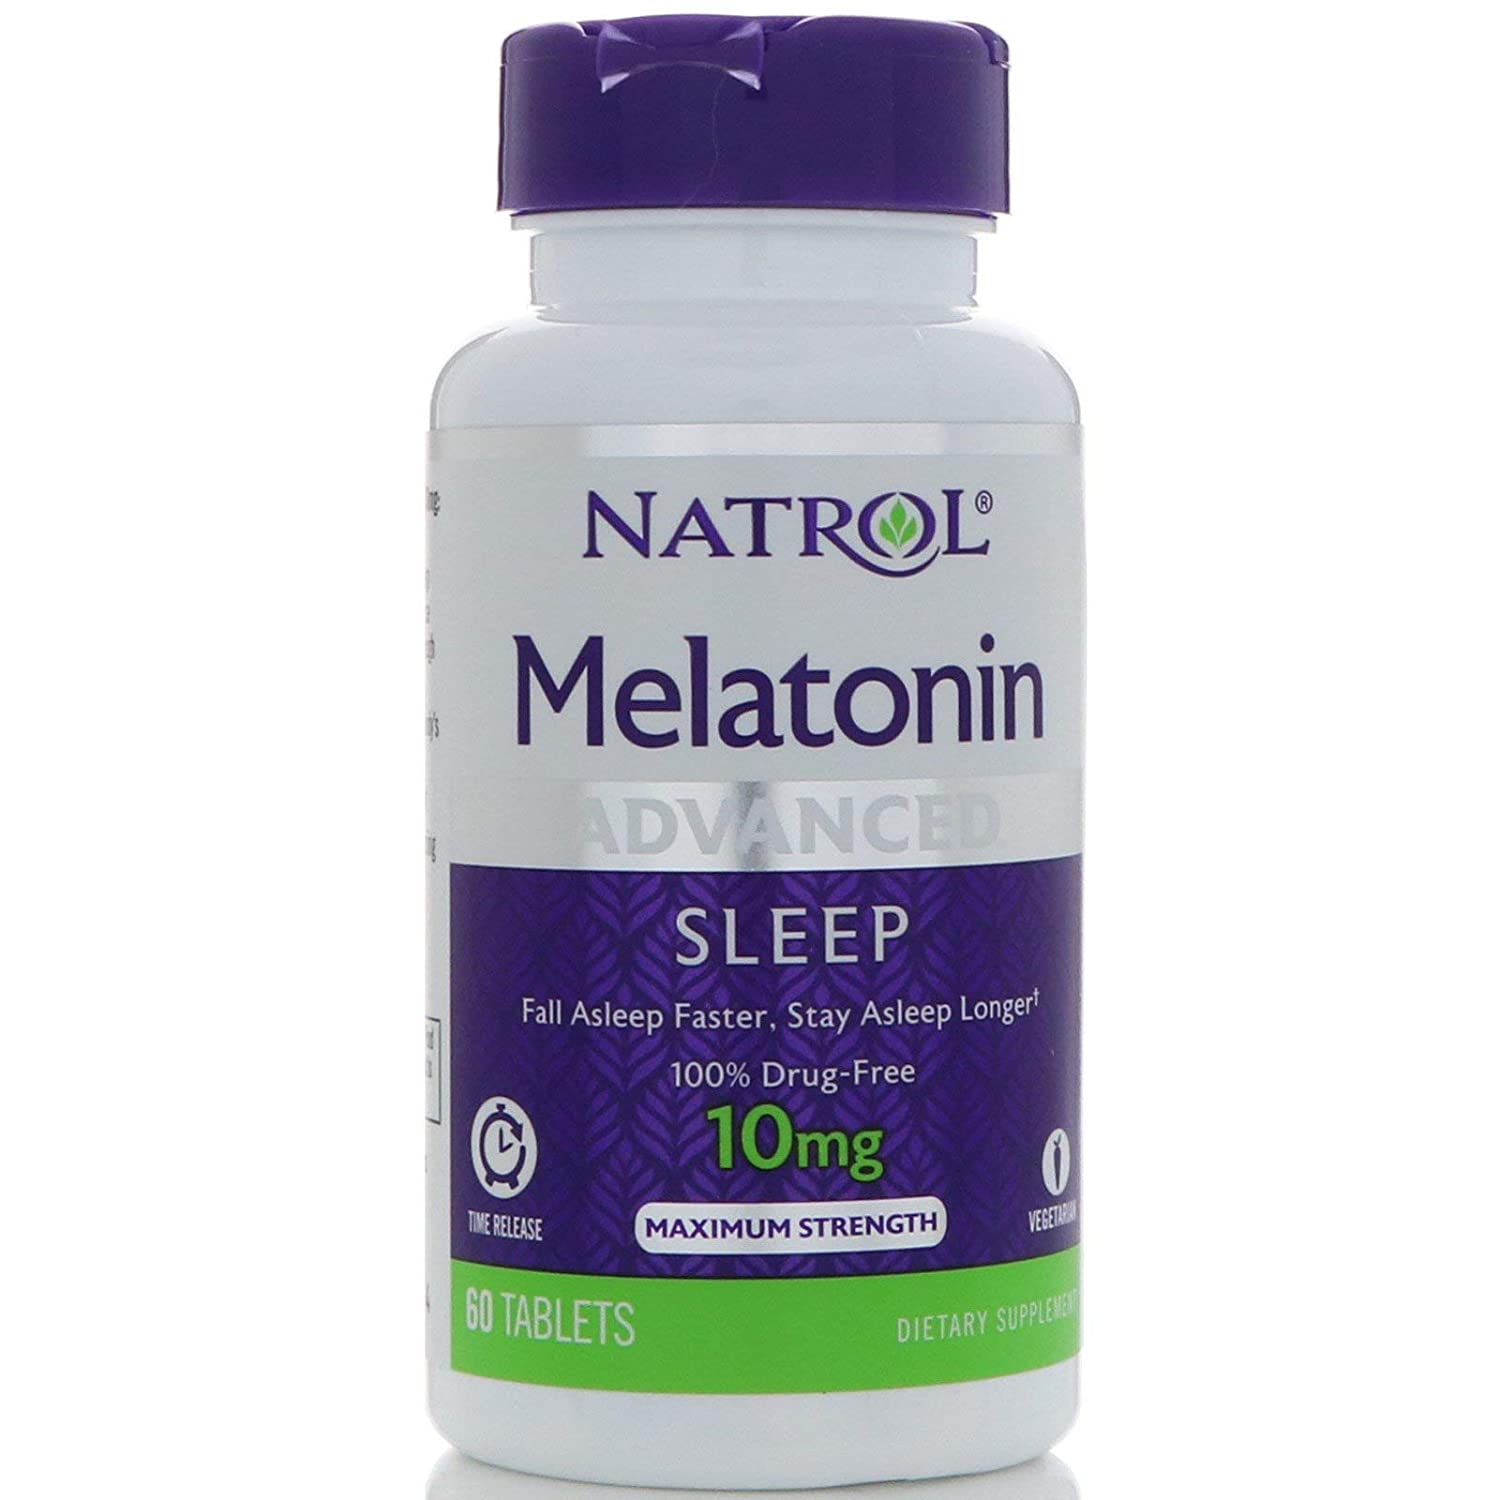 Amazon.com: Natrol Melatonin Advanced Sleep Time Release 10 mg 60 Tablets: Health & Personal Care